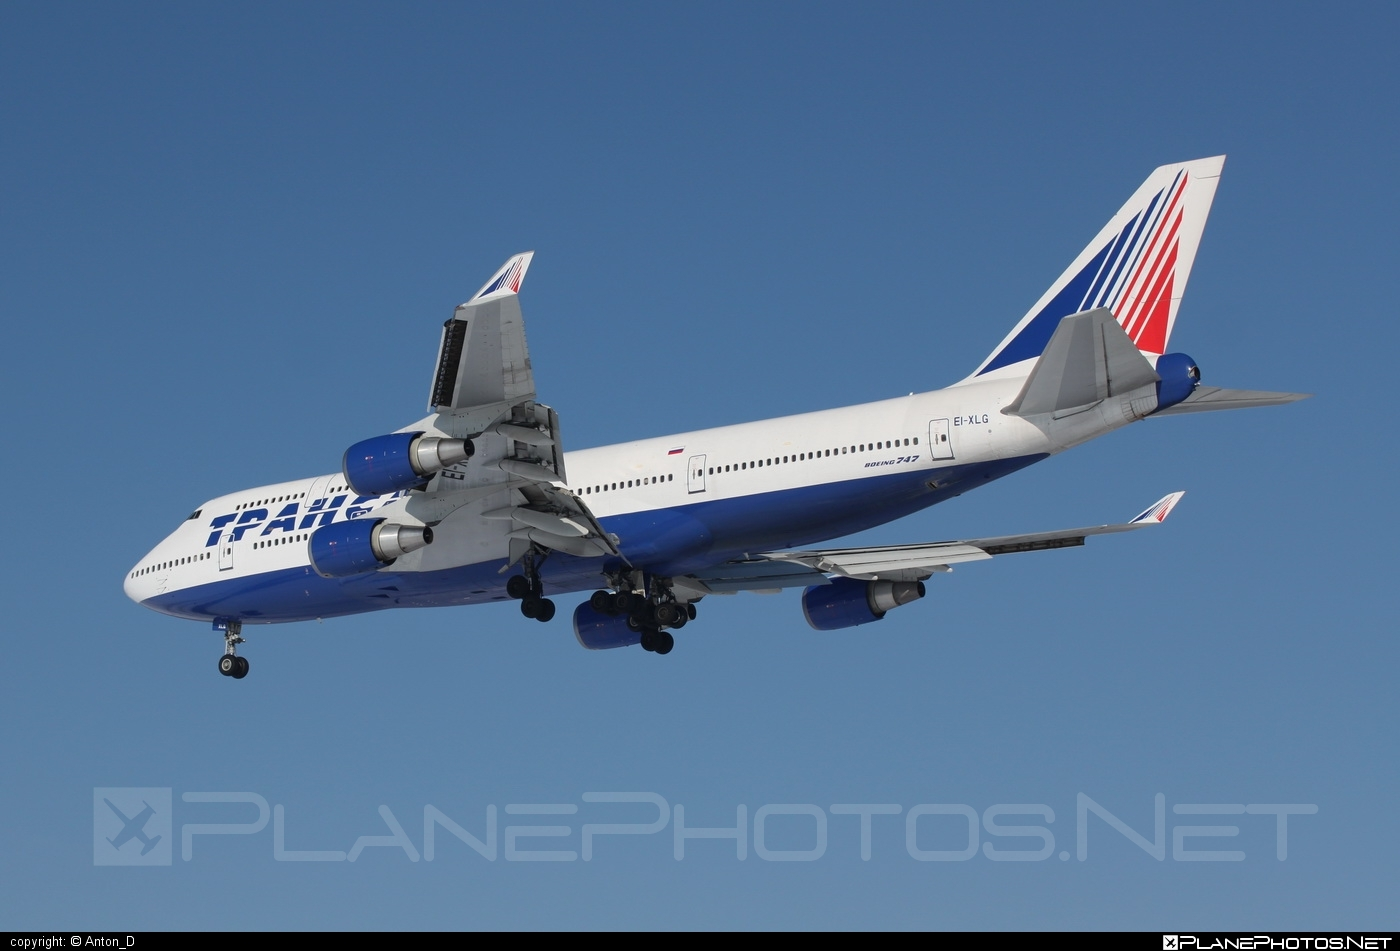 Boeing 747-400 - EI-XLG operated by Transaero Airlines #b747 #boeing #boeing747 #jumbo #transaero #transaeroairlines